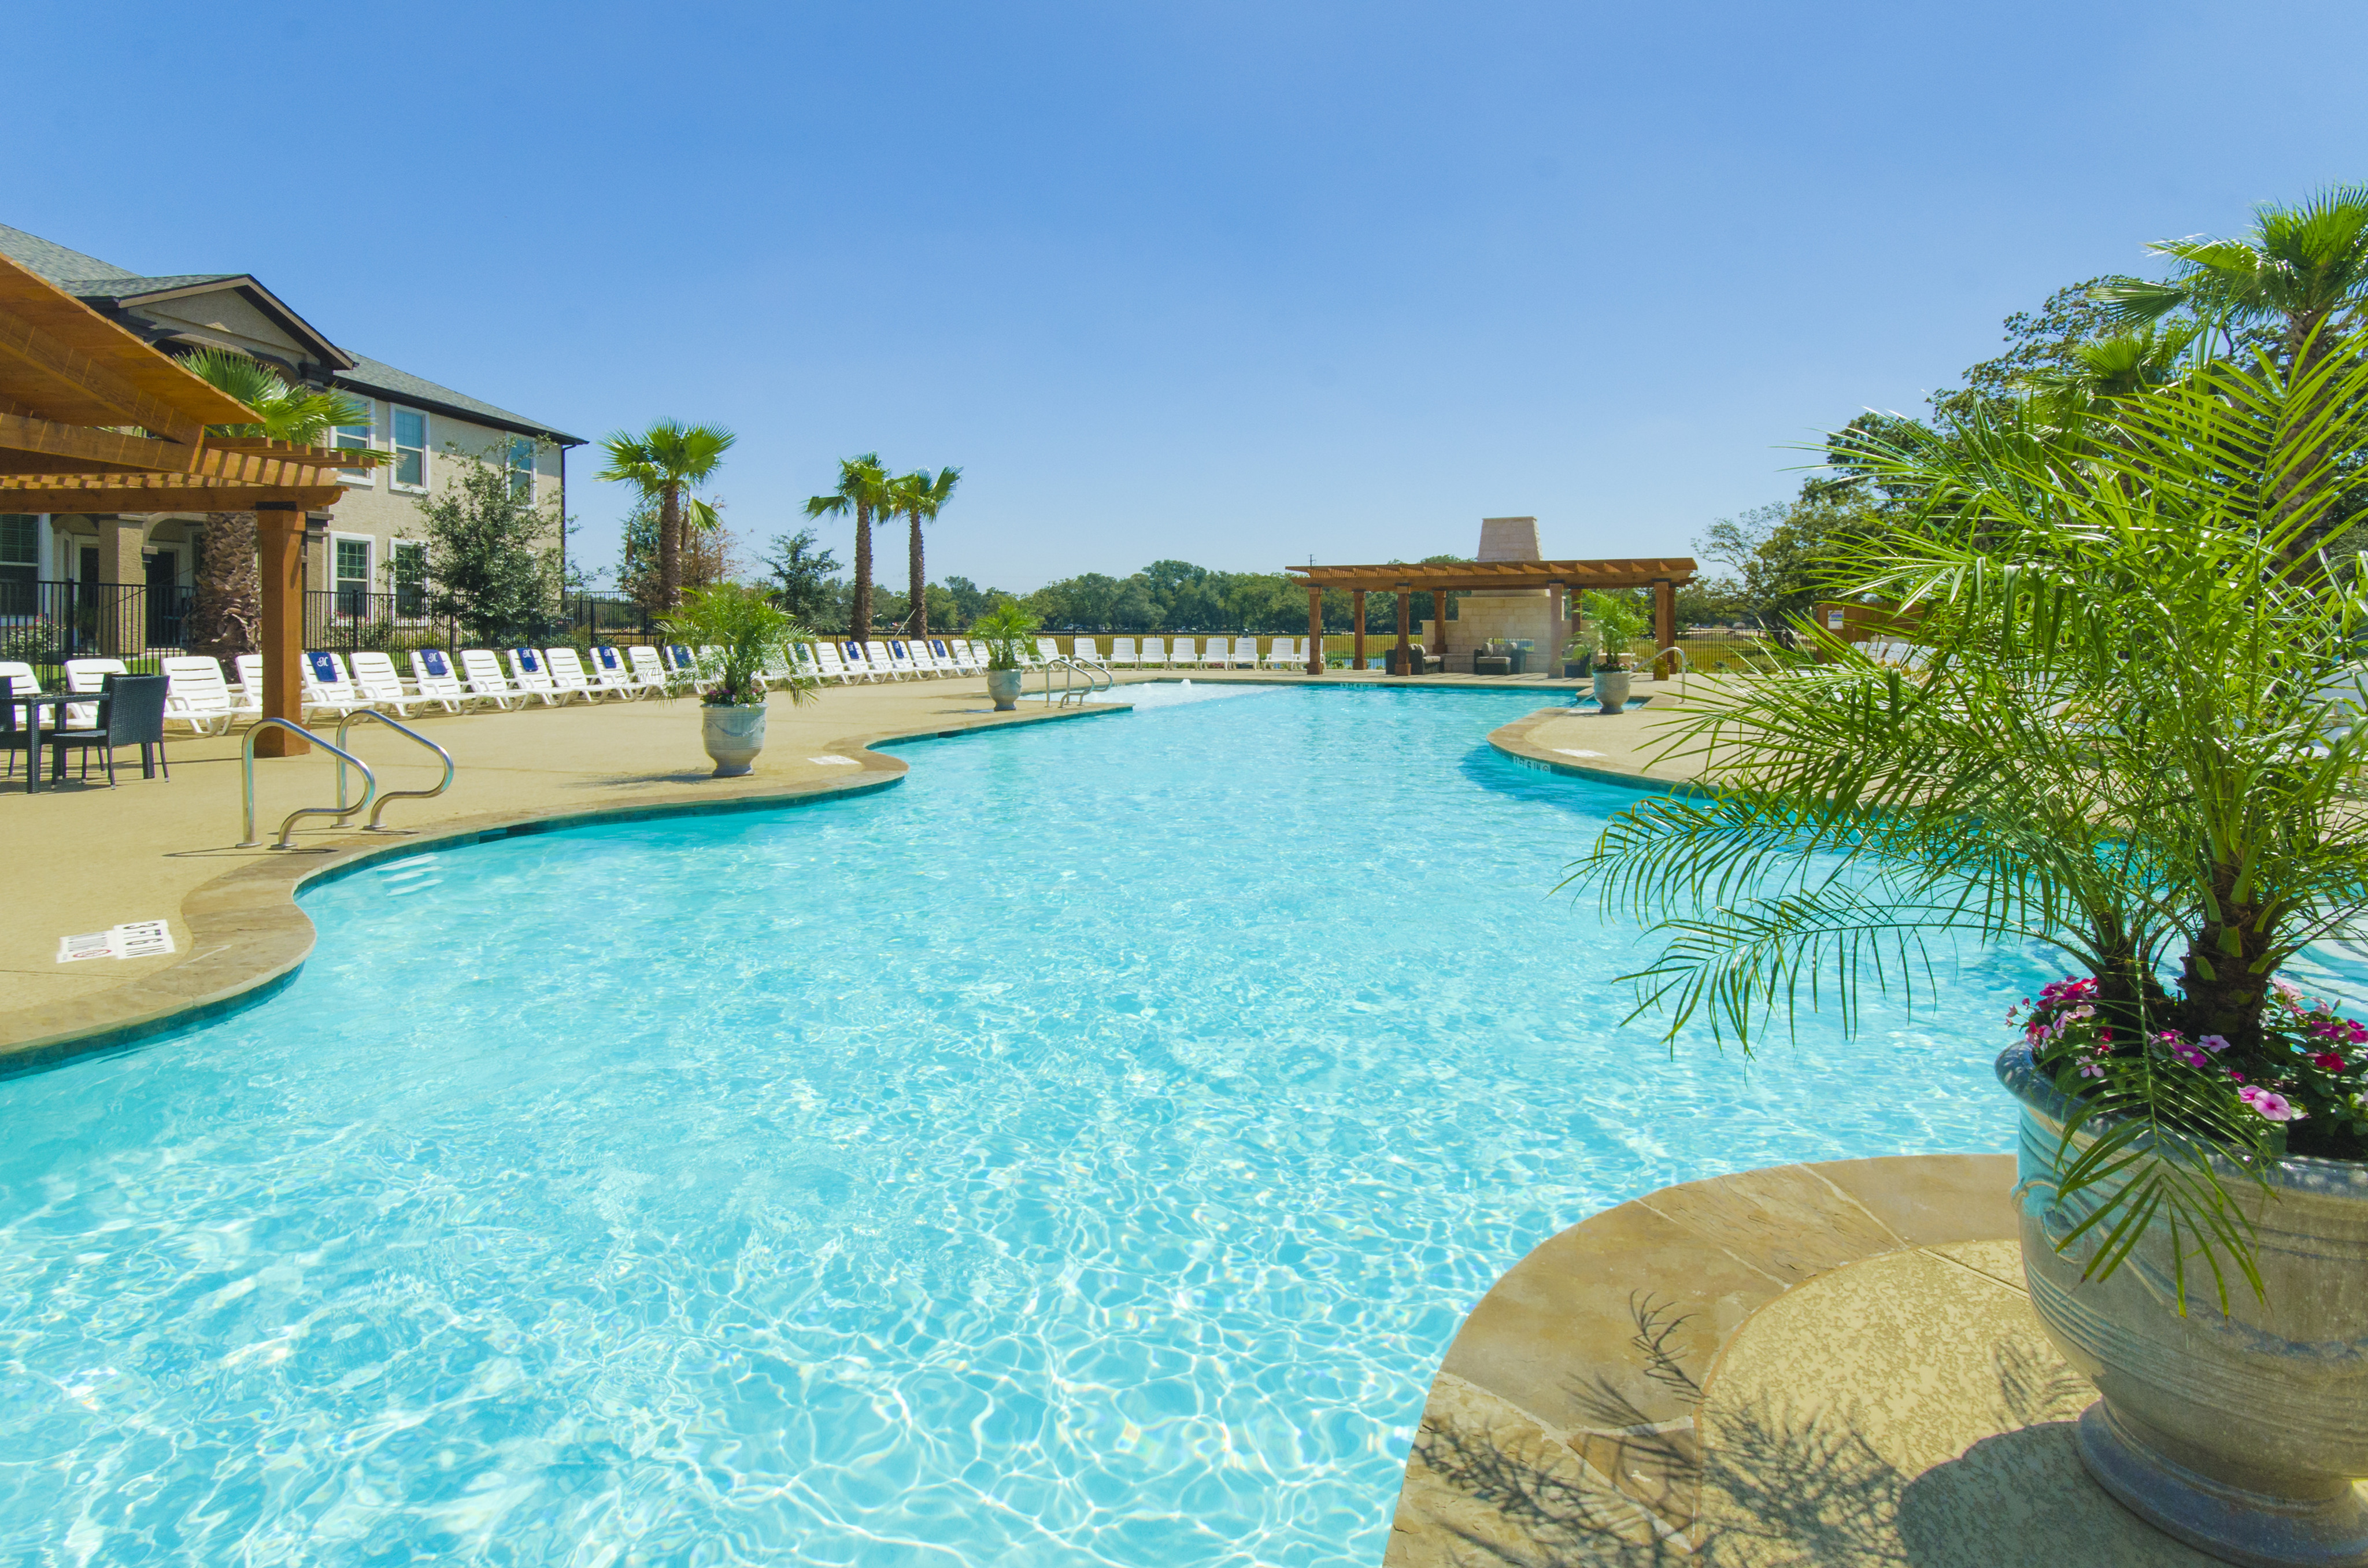 Image of Luxe, Resort-Style Swimming Pool with Tanning Deck for The Mansions Lakeway